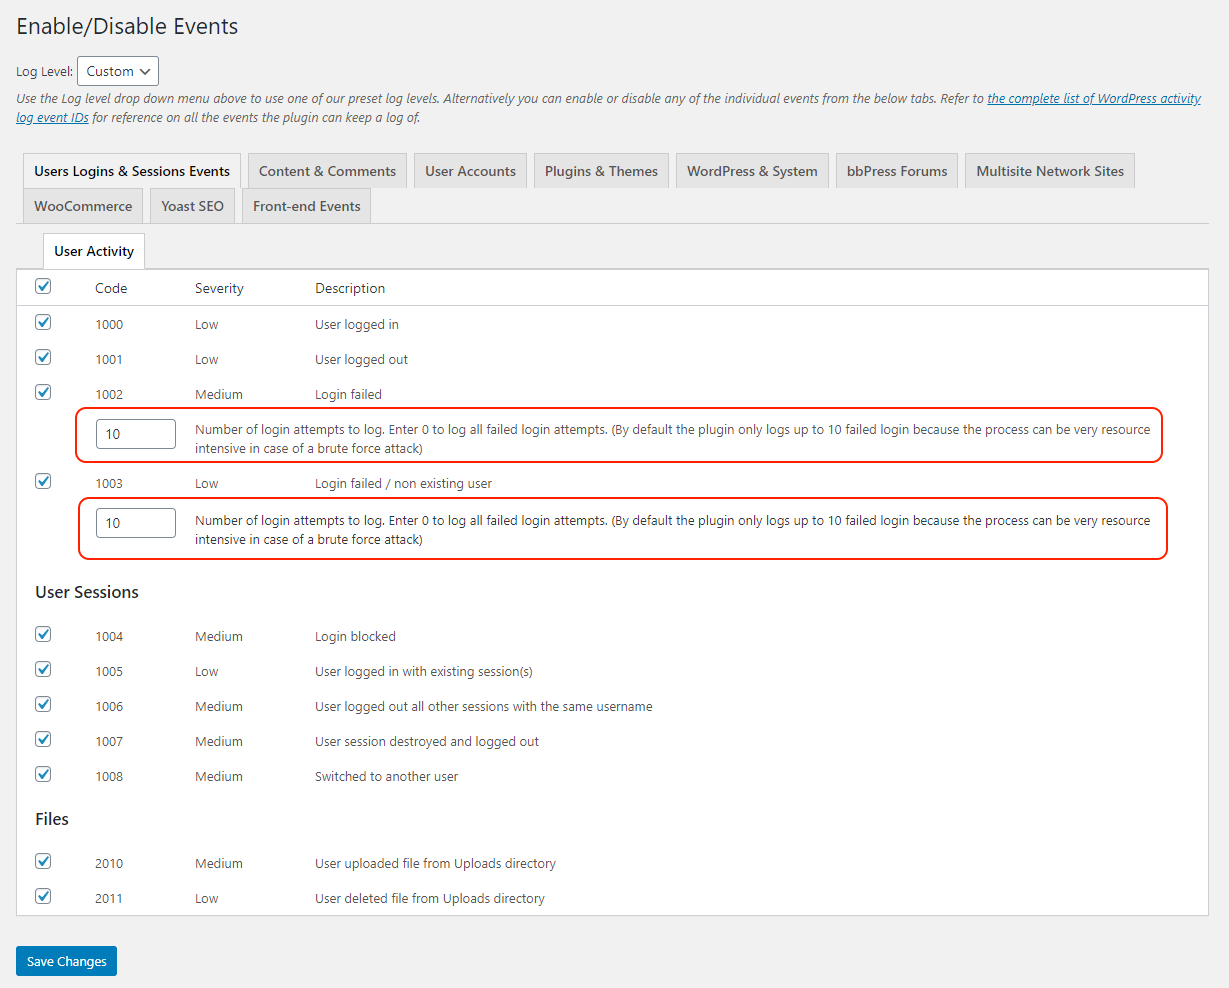 Configuring the events to record failed WordPress logins in the activity logs